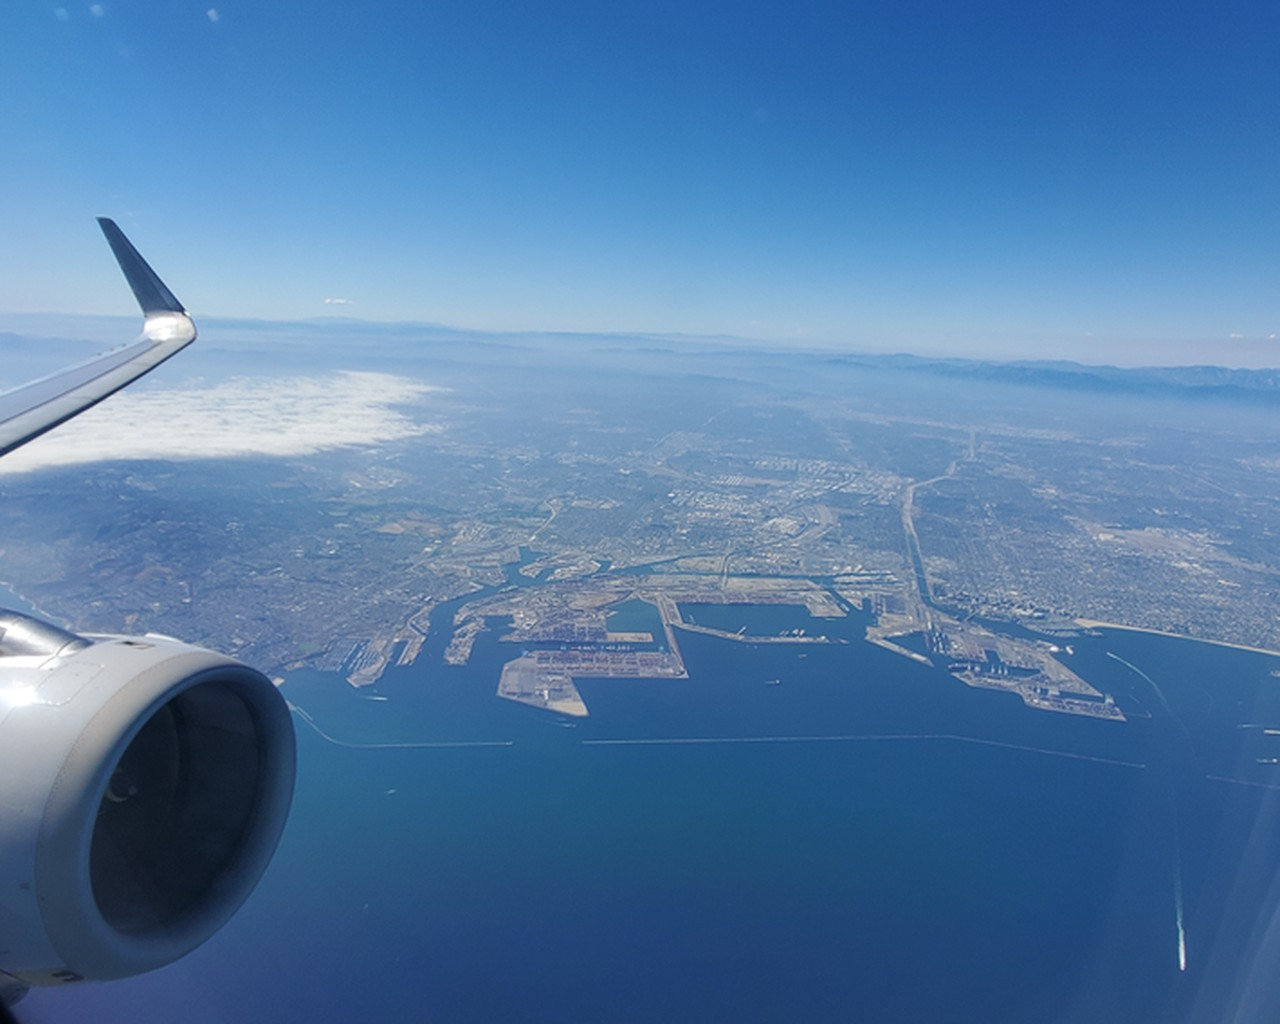 Review of American Airlines flight from Los Angeles to New York in First